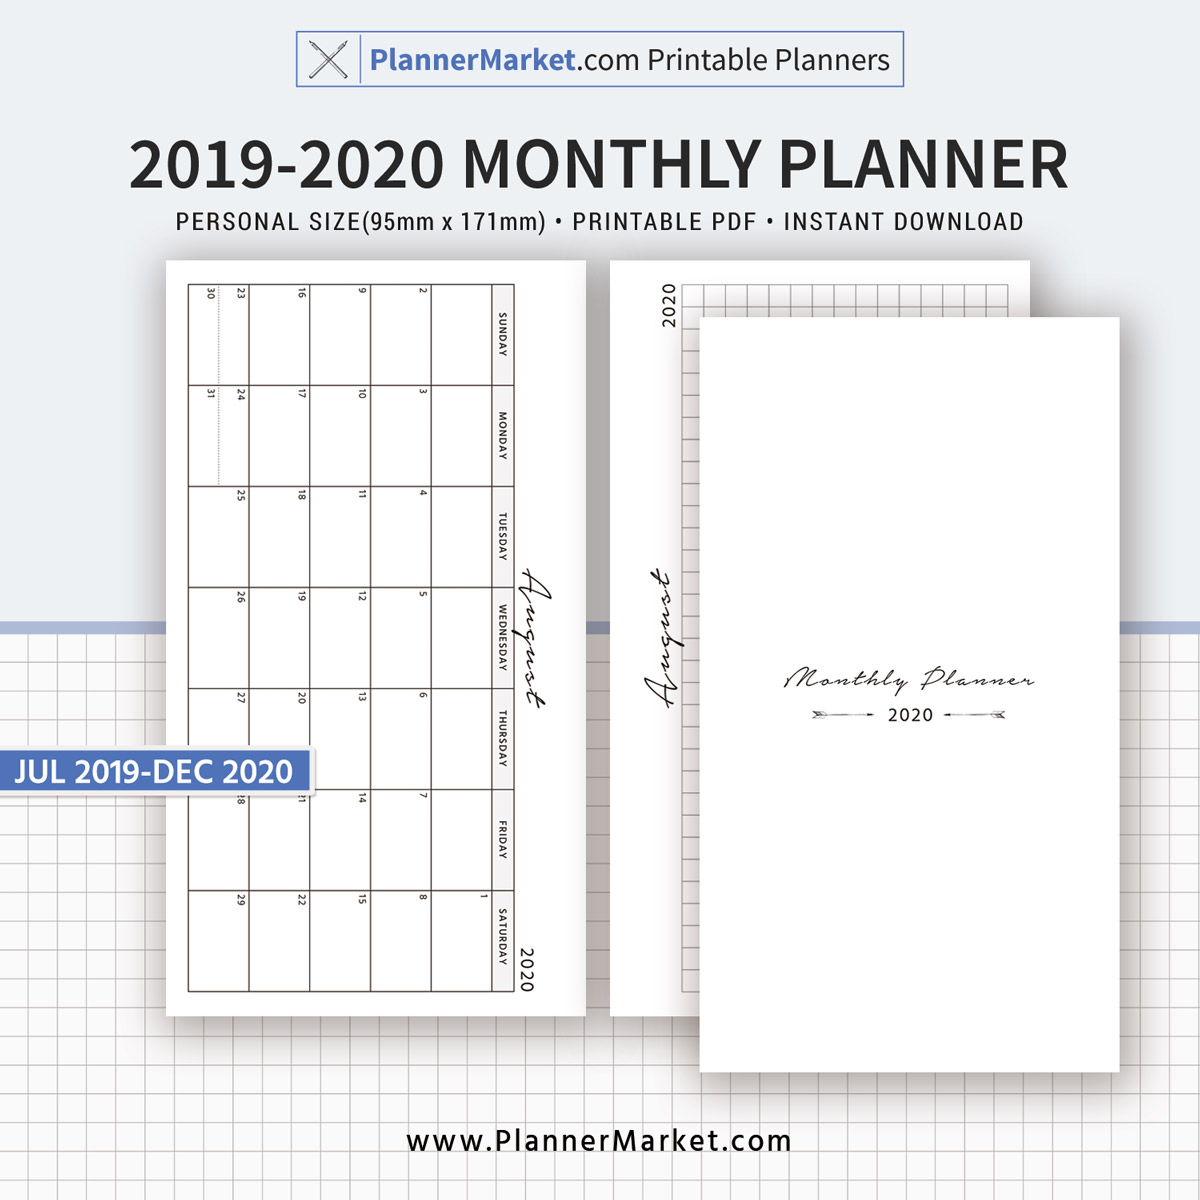 picture about Printable Planner referred to as 2019-2020 Regular Planner, 18-Thirty day period Dated Calendar, Regular Plan, Particular person Dimensions, Planner Inserts, Refills, Printable Planner